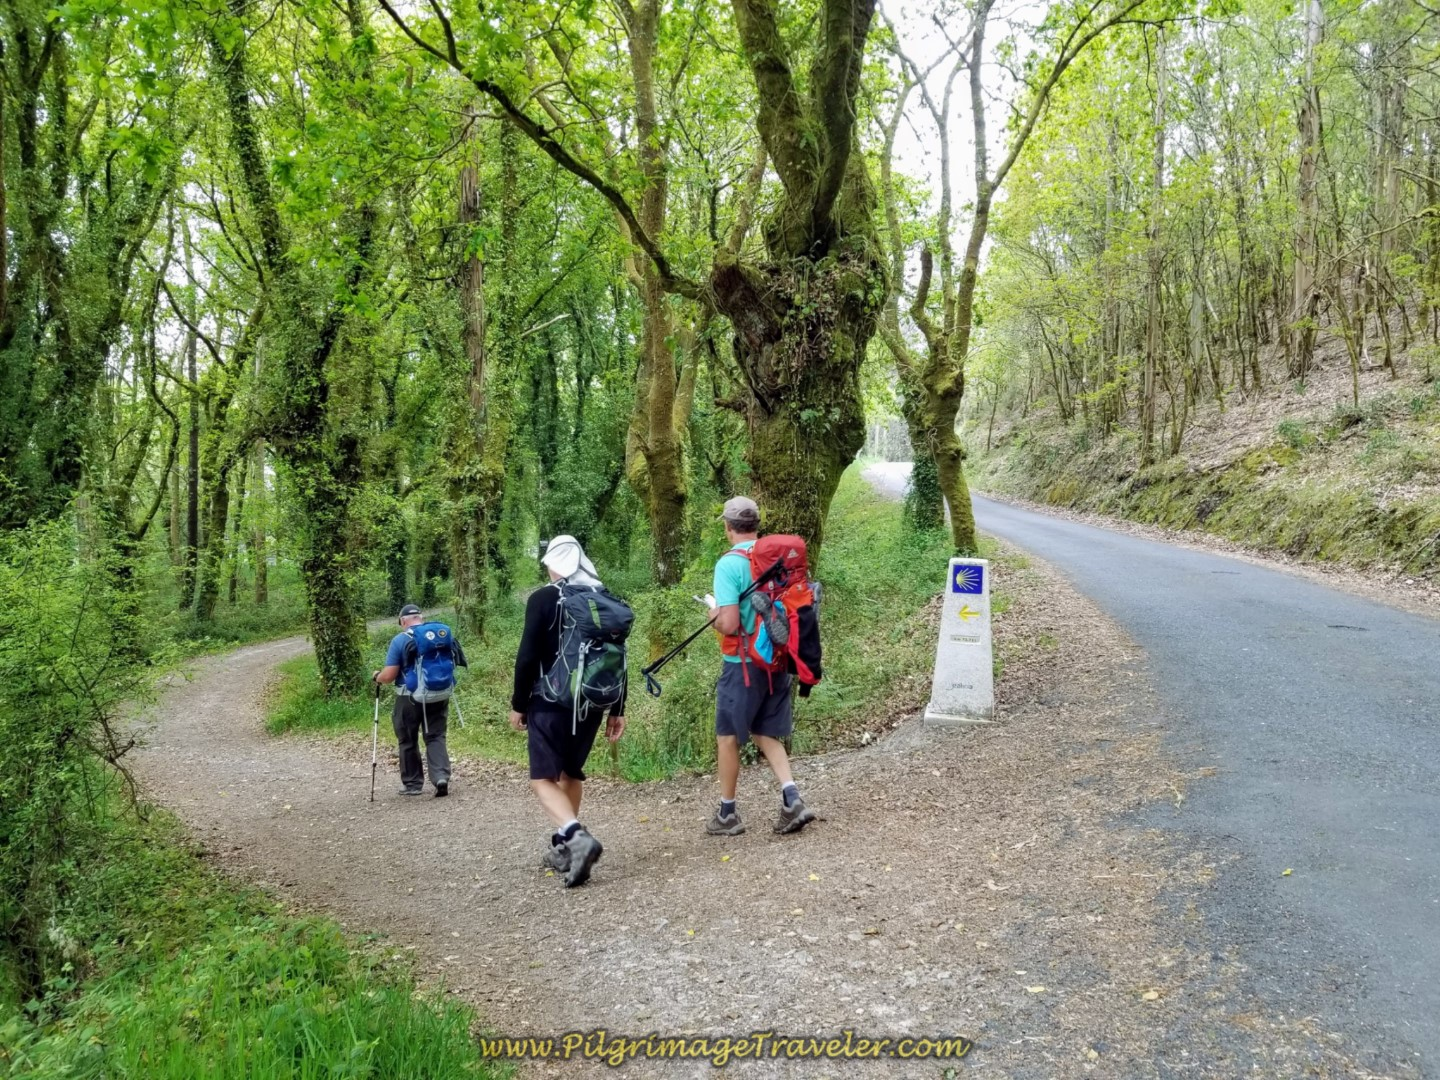 Left Turn Onto Path at 72 Kilometer Marker on day one of the Camino Fisterra